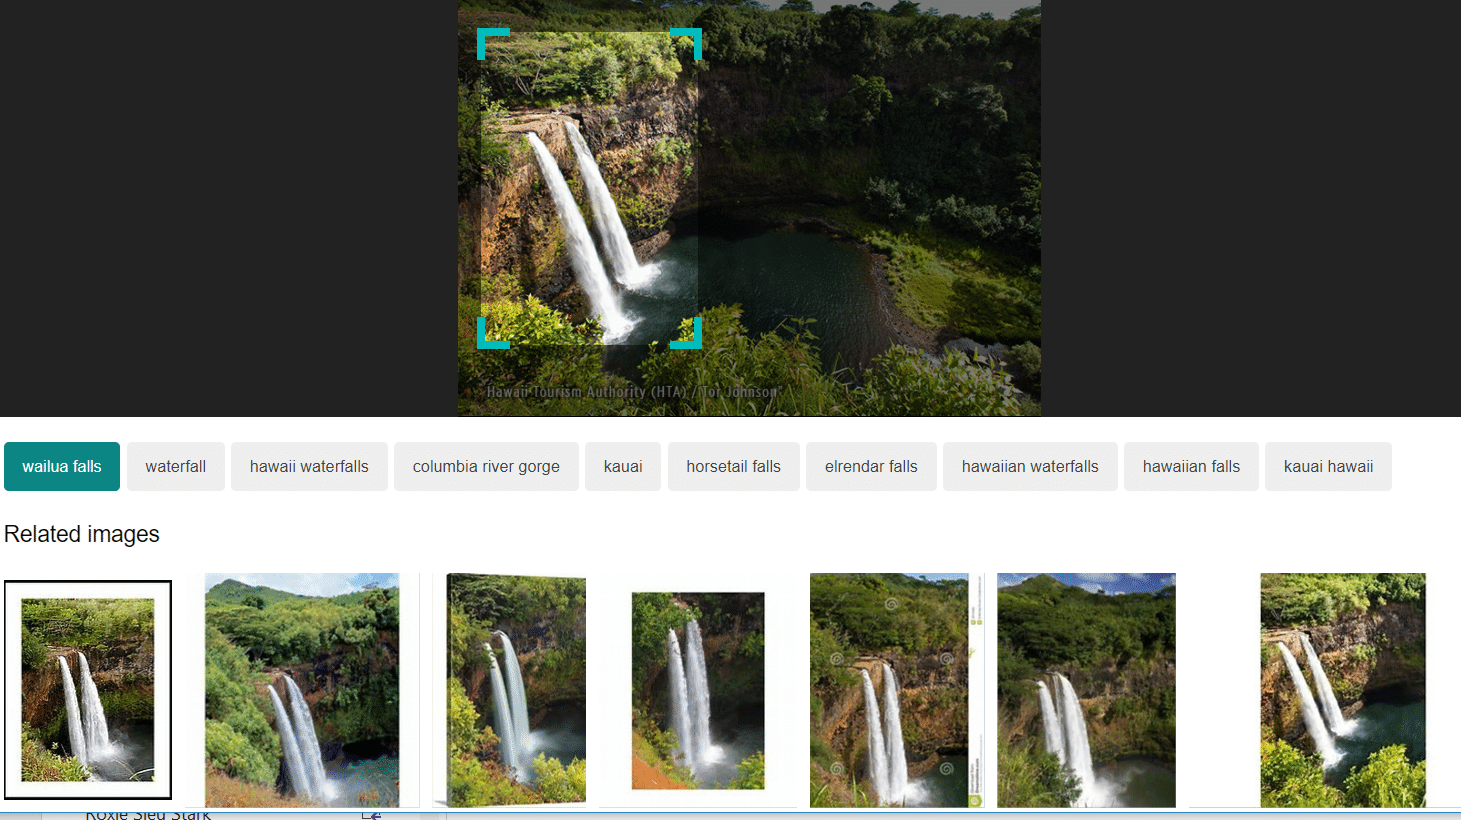 Using Bing's image within image search, you can select a portion of a picture, see similar images and find out what the picture depicts.